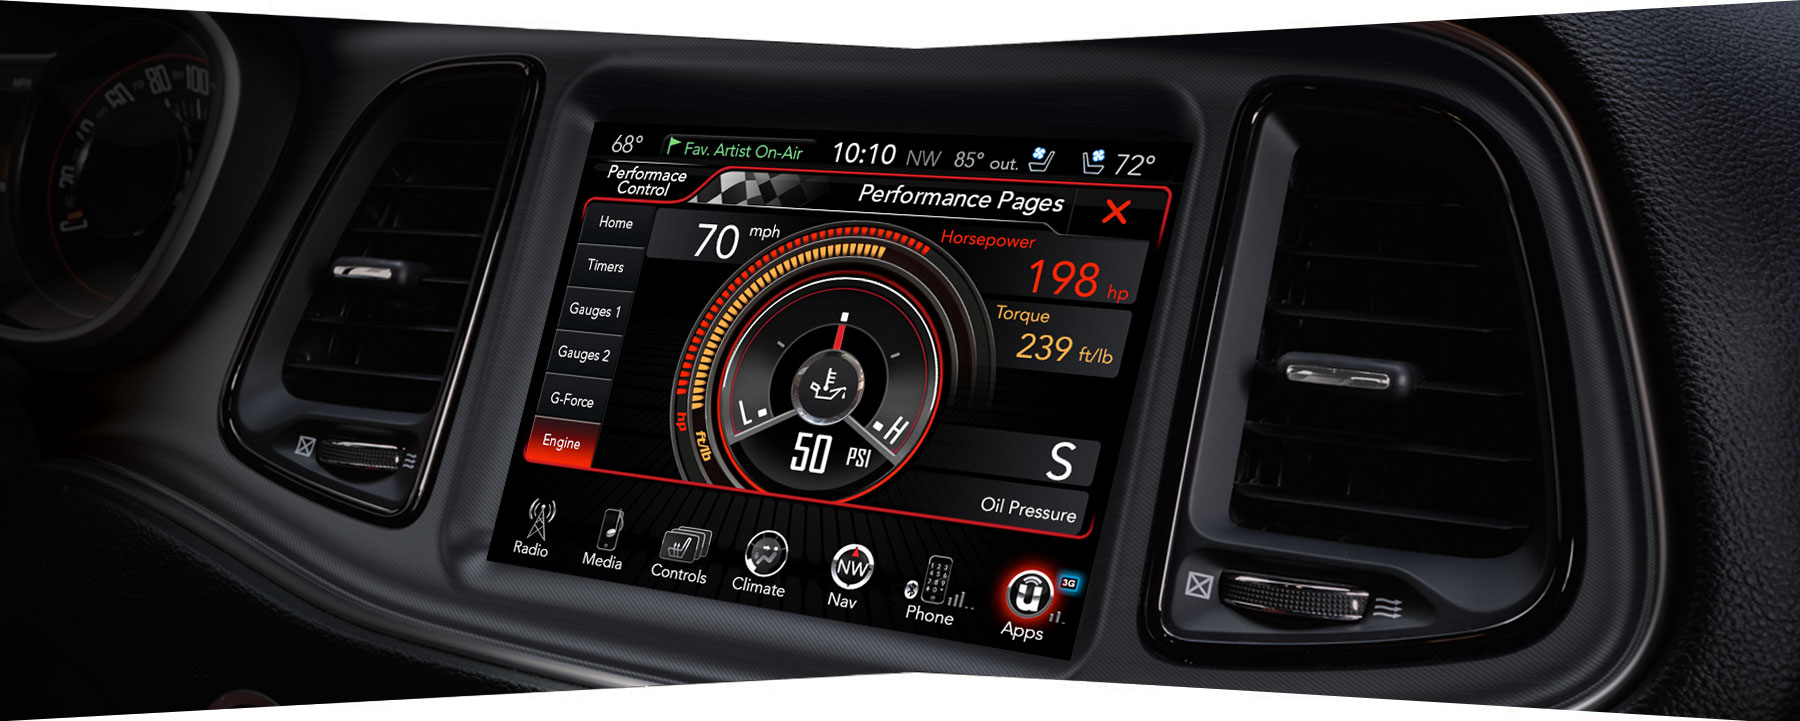 2019 dodge performance pages engine statistics